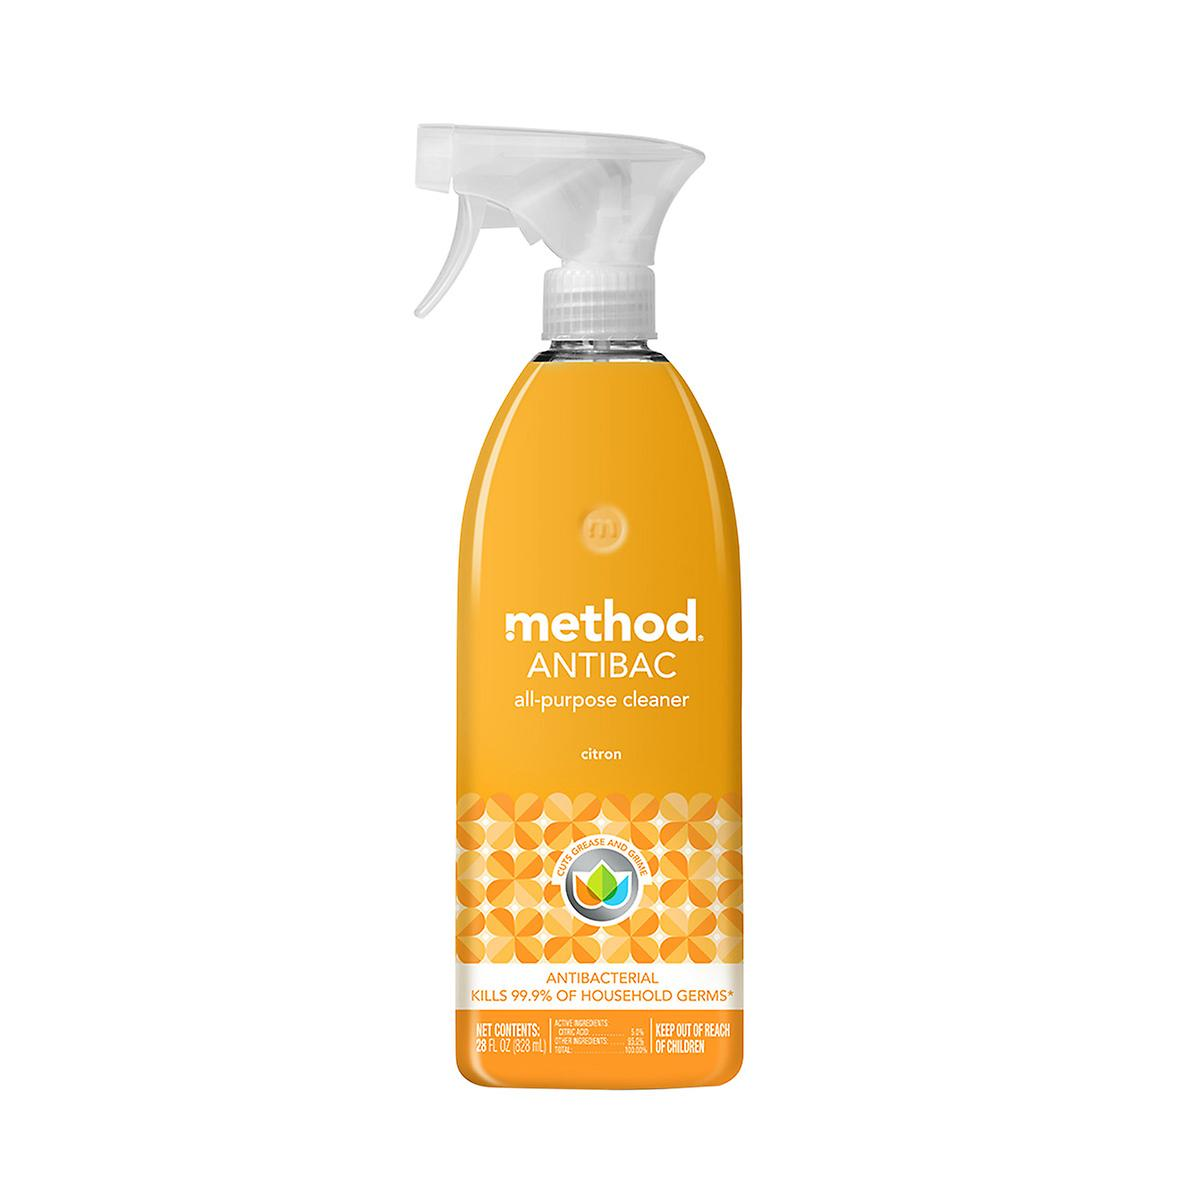 Method 28 oz. Citron Antibacterial All-Purpose Cleaner